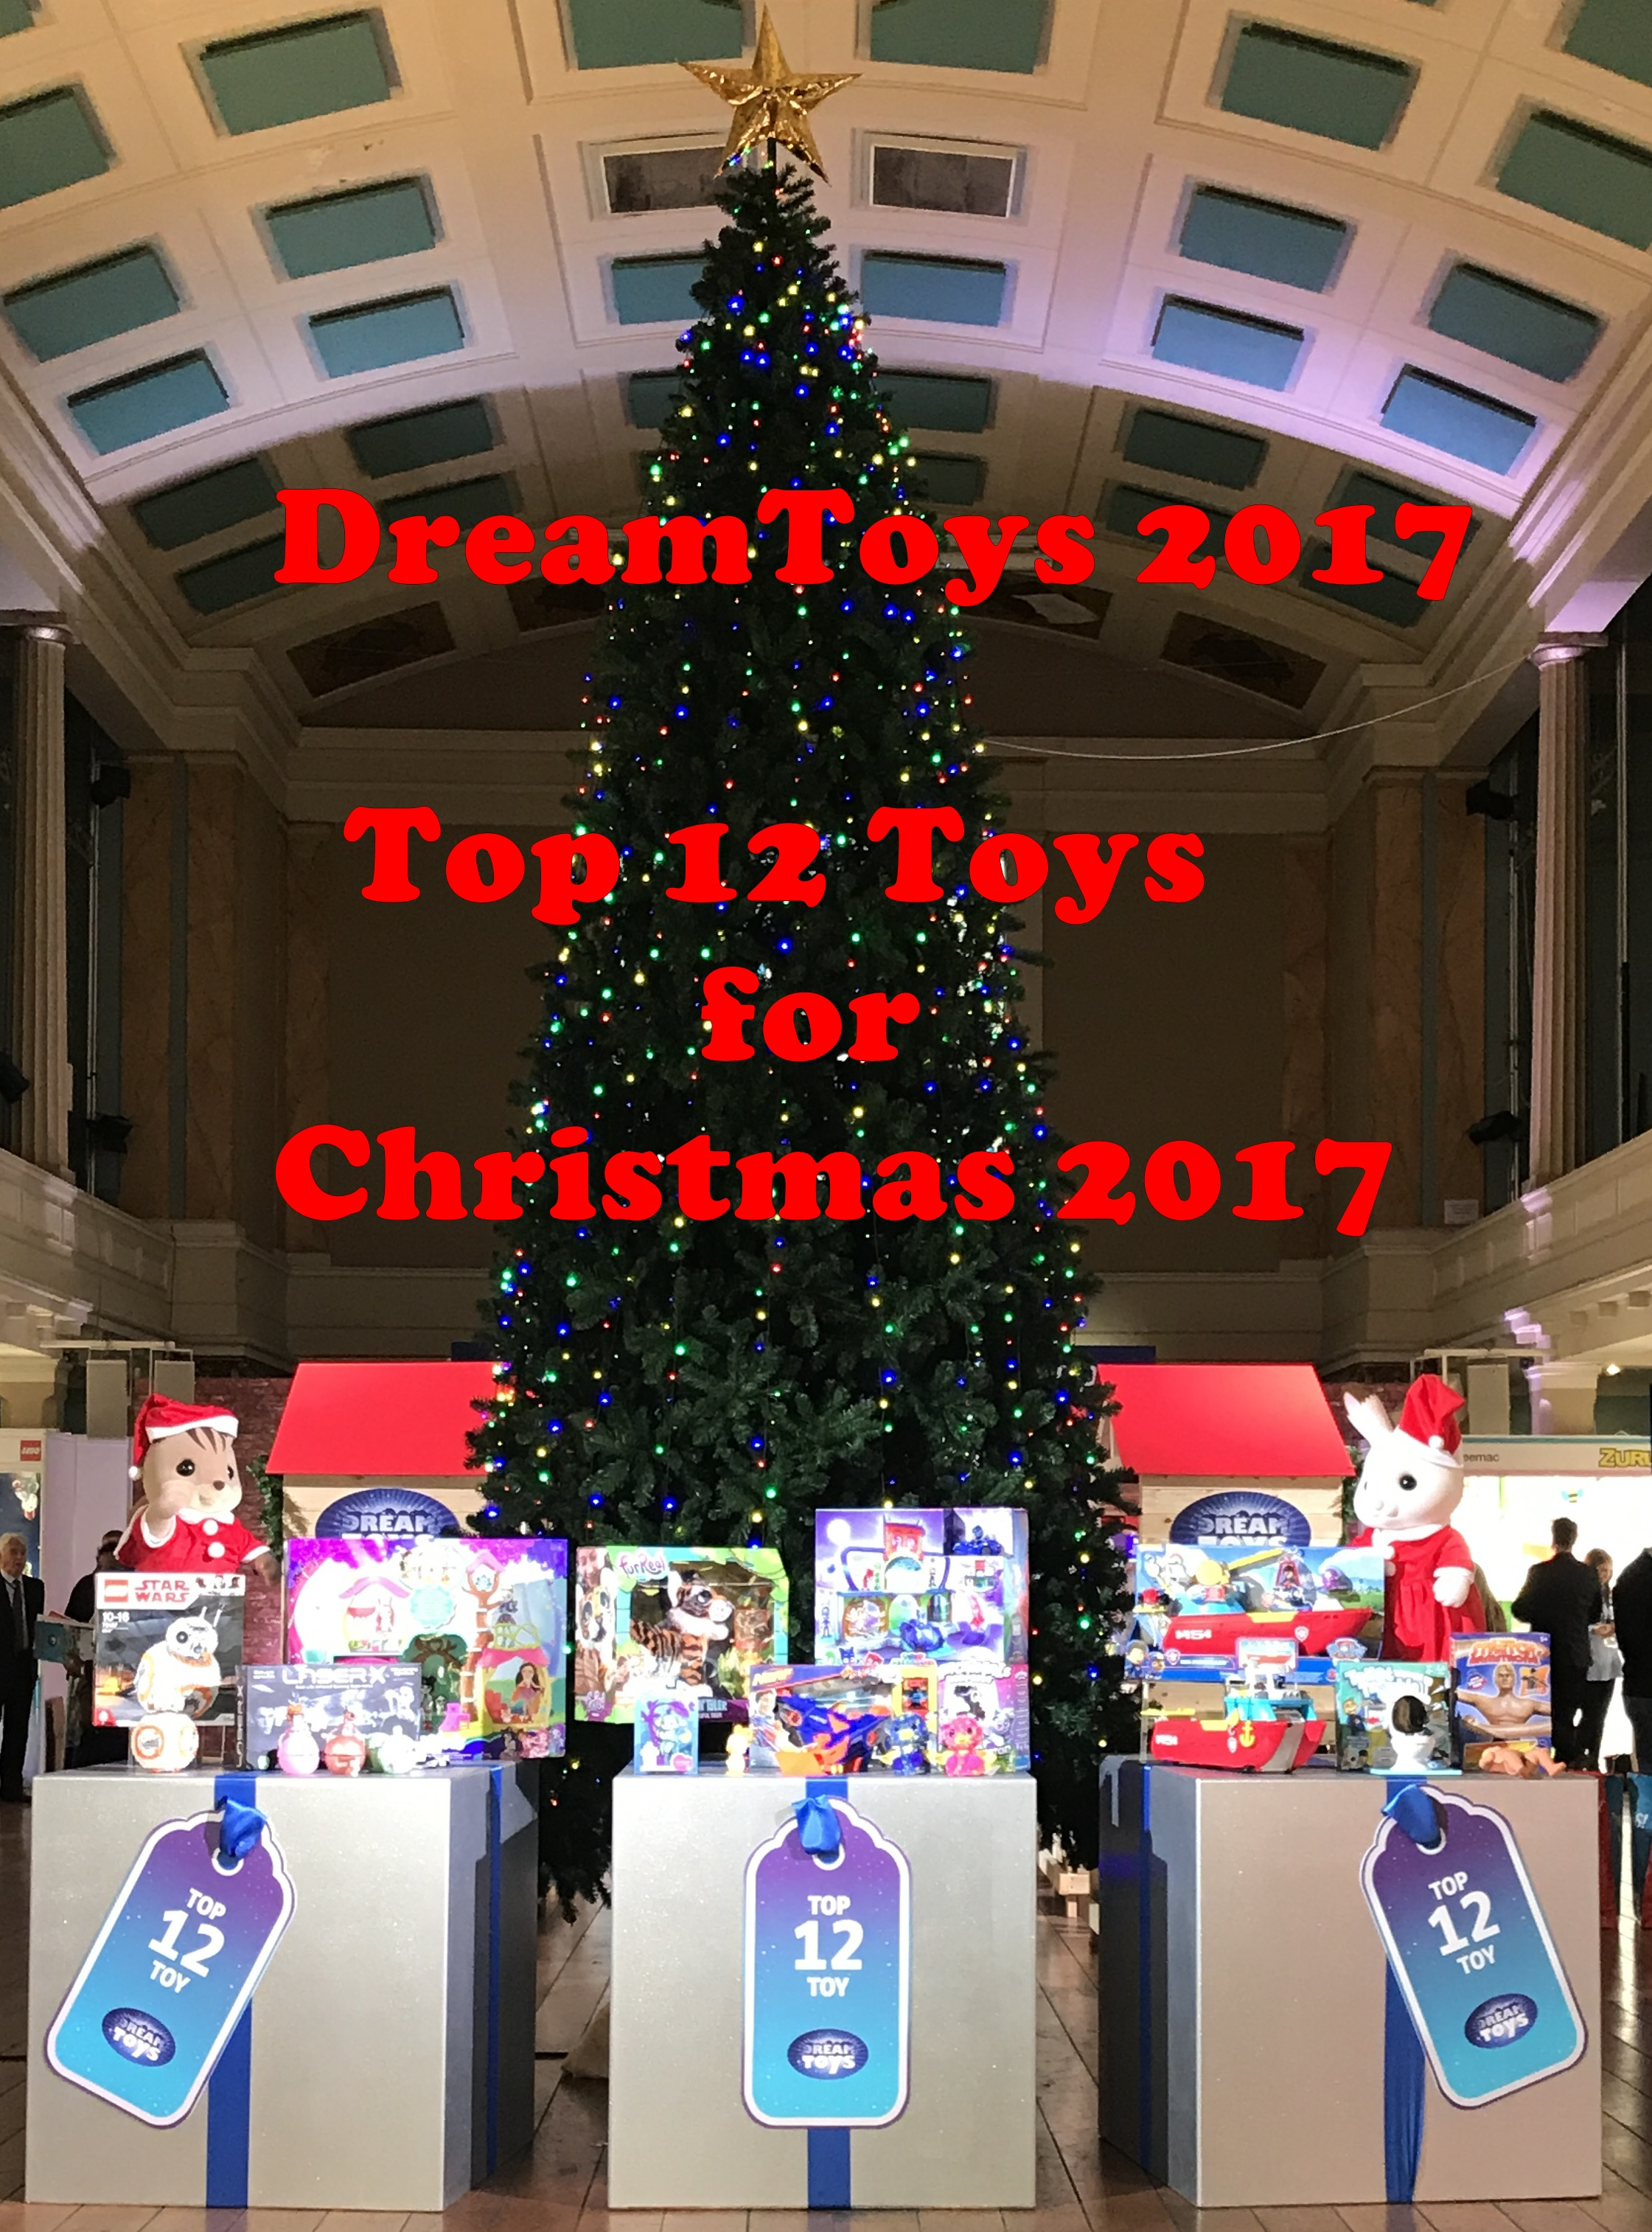 Toys for Christmas – The toys that hit the Top 12 list at DreamToys 2017